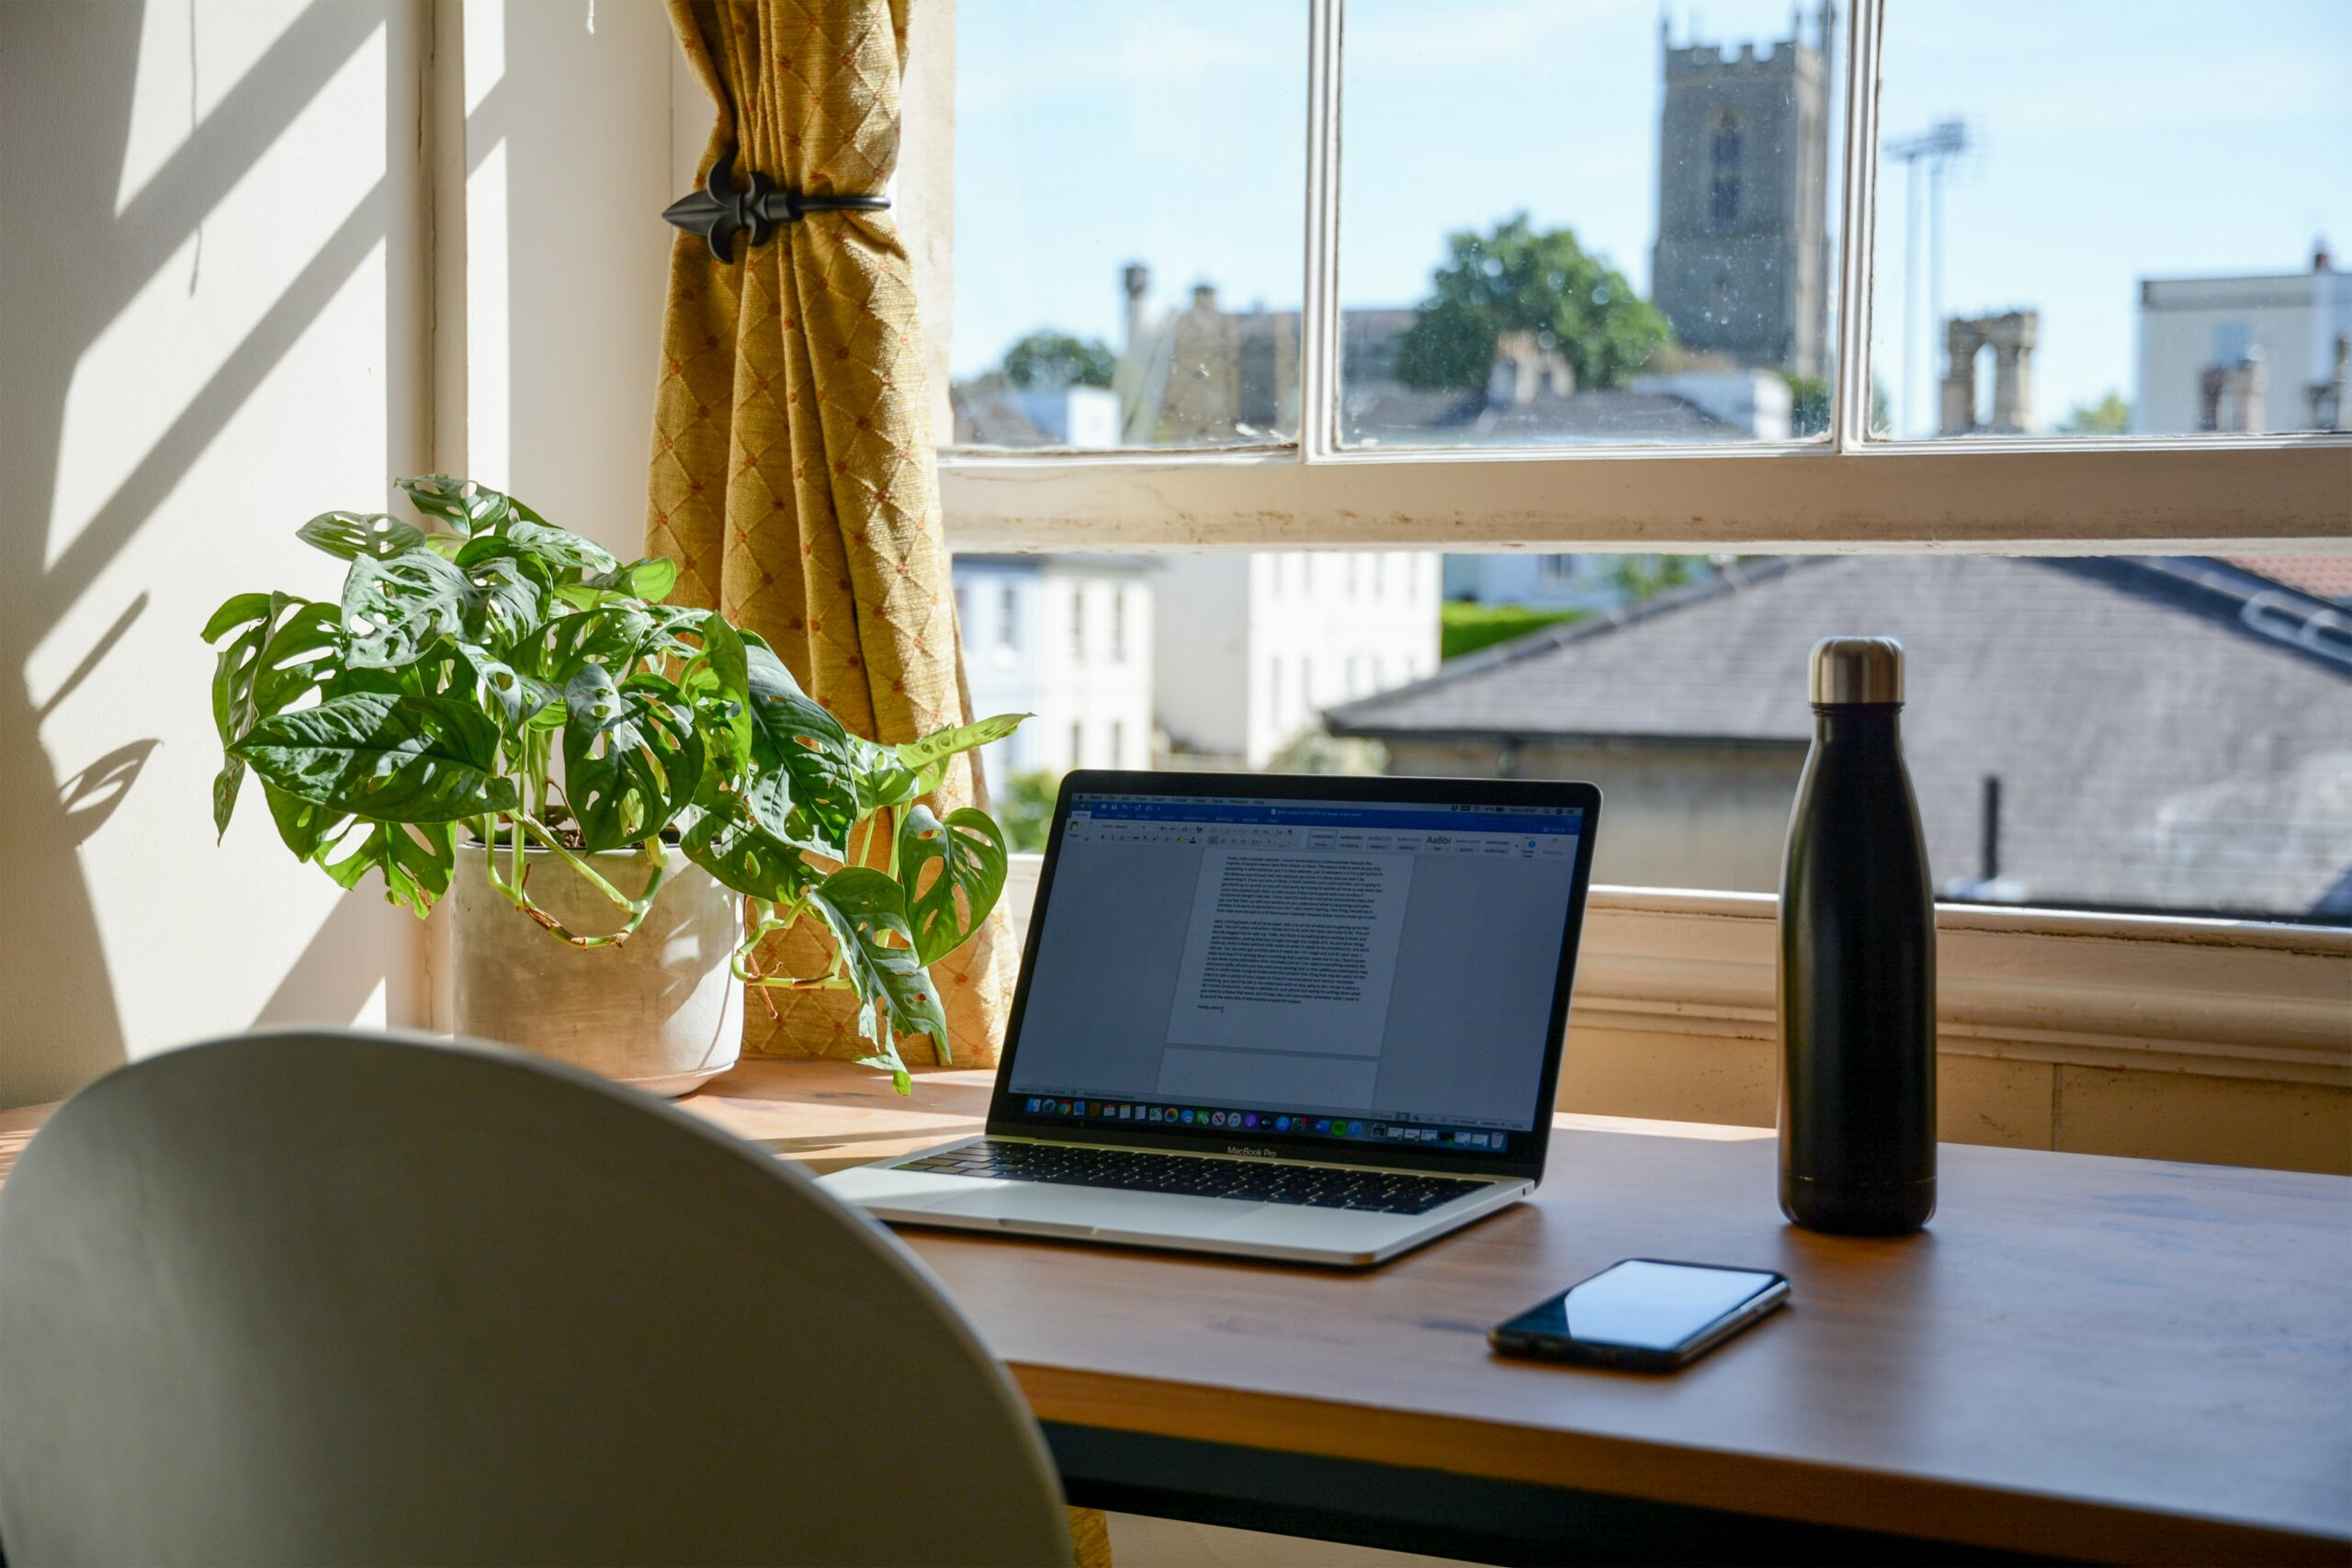 How to make working from home comfortable for tenants